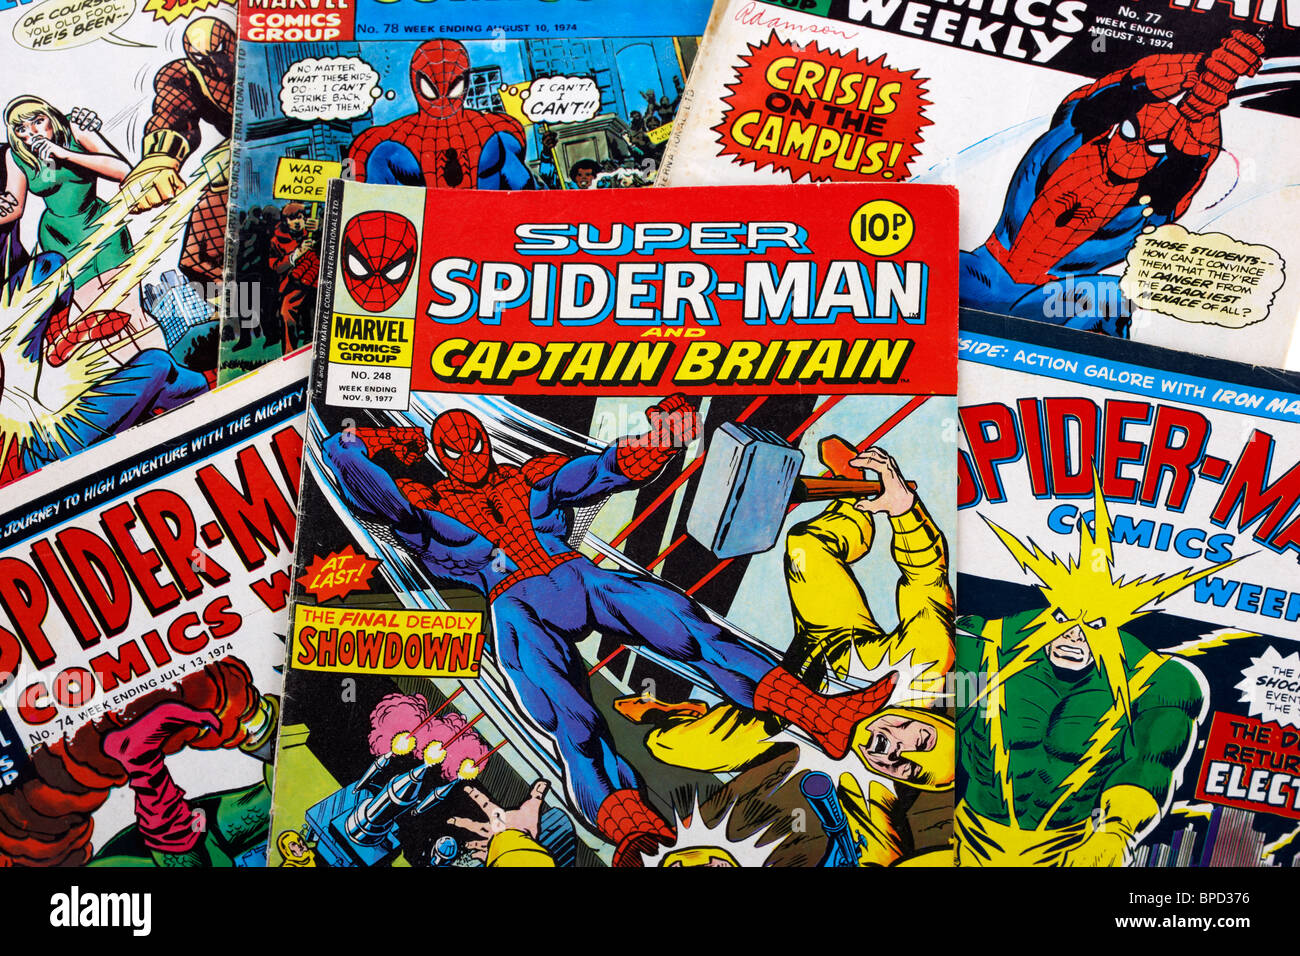 spider-man and super spiderman marvel group comic books from the 1970s in the uk - Stock Image